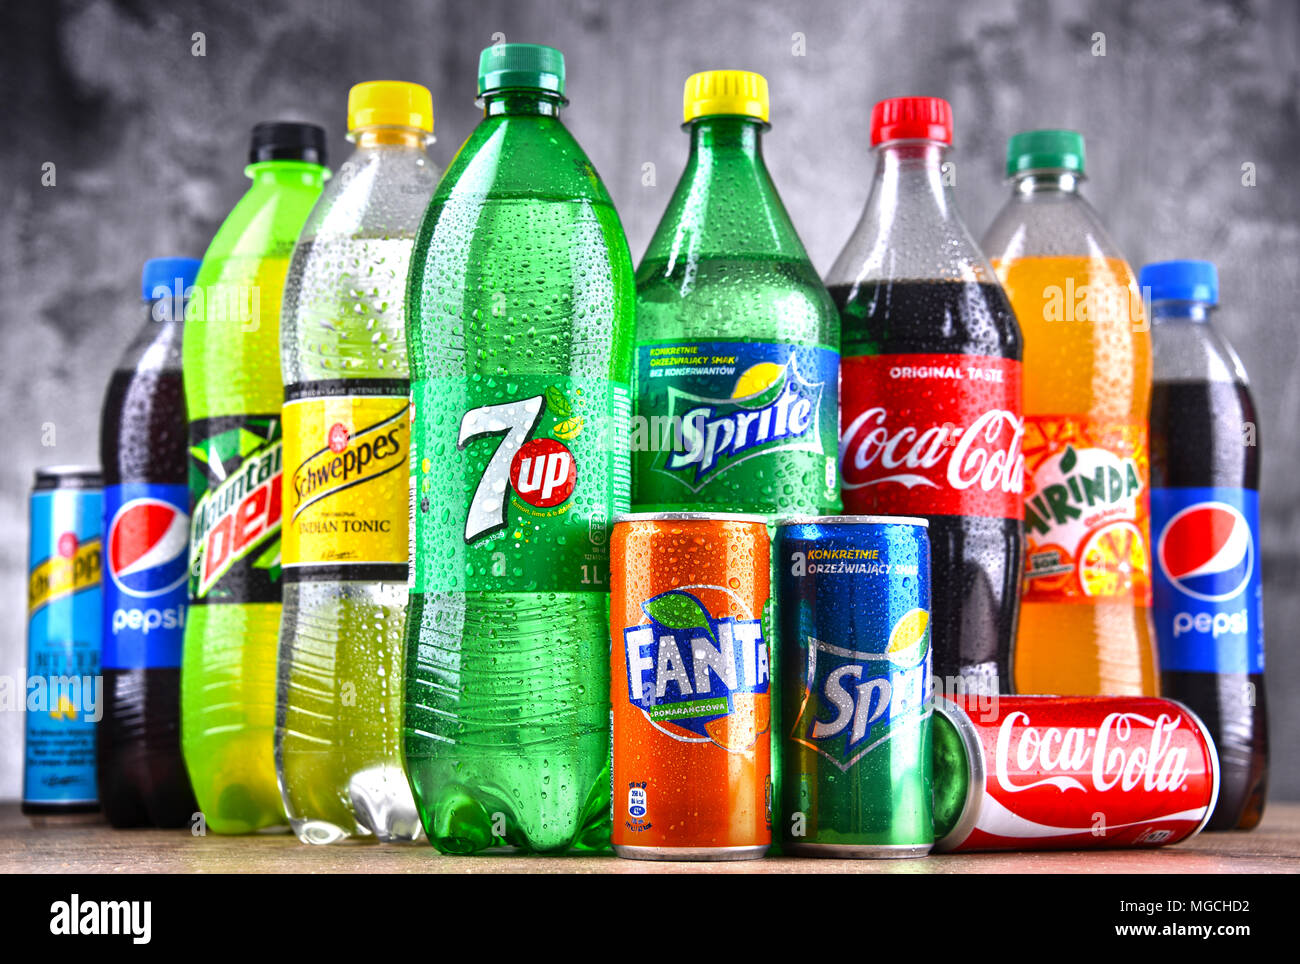 Pepsico Products Stock Photos & Pepsico Products Stock